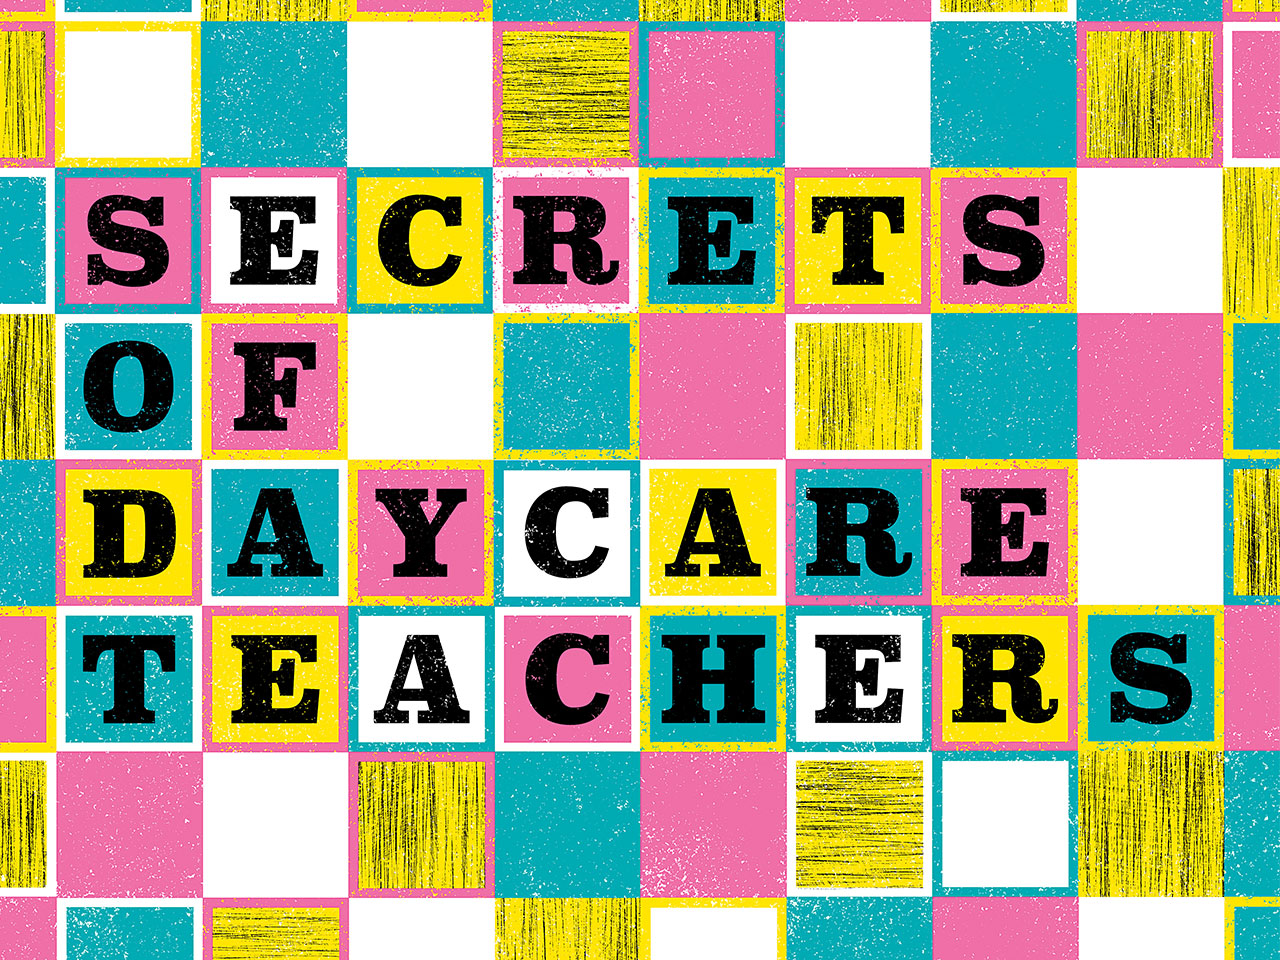 Illustrated letters that look like blocks spelling Secrets of Daycare Teachers